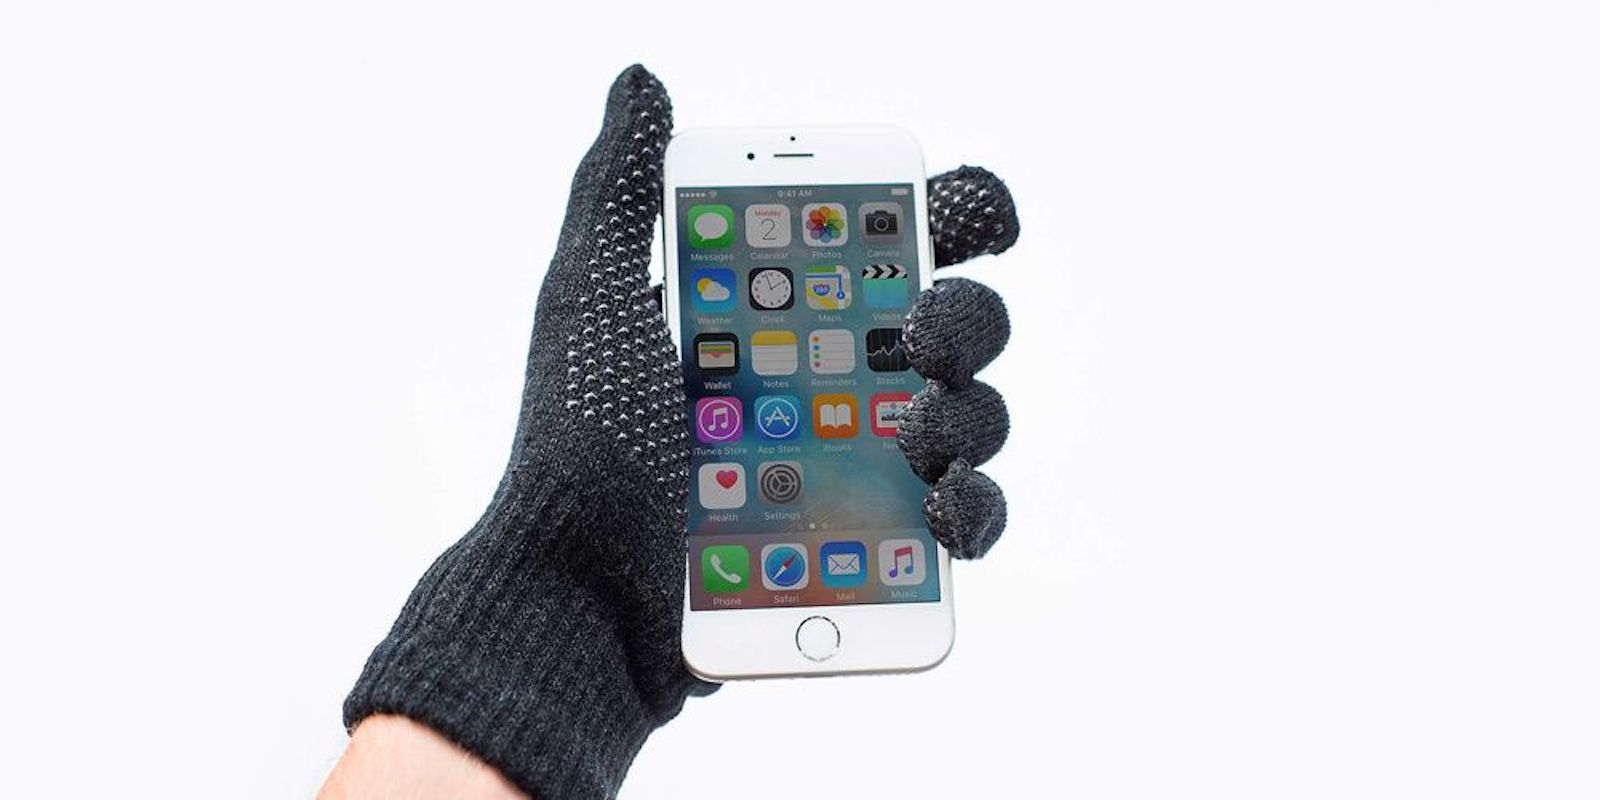 Don't let the cold weather keep you from using your phone.